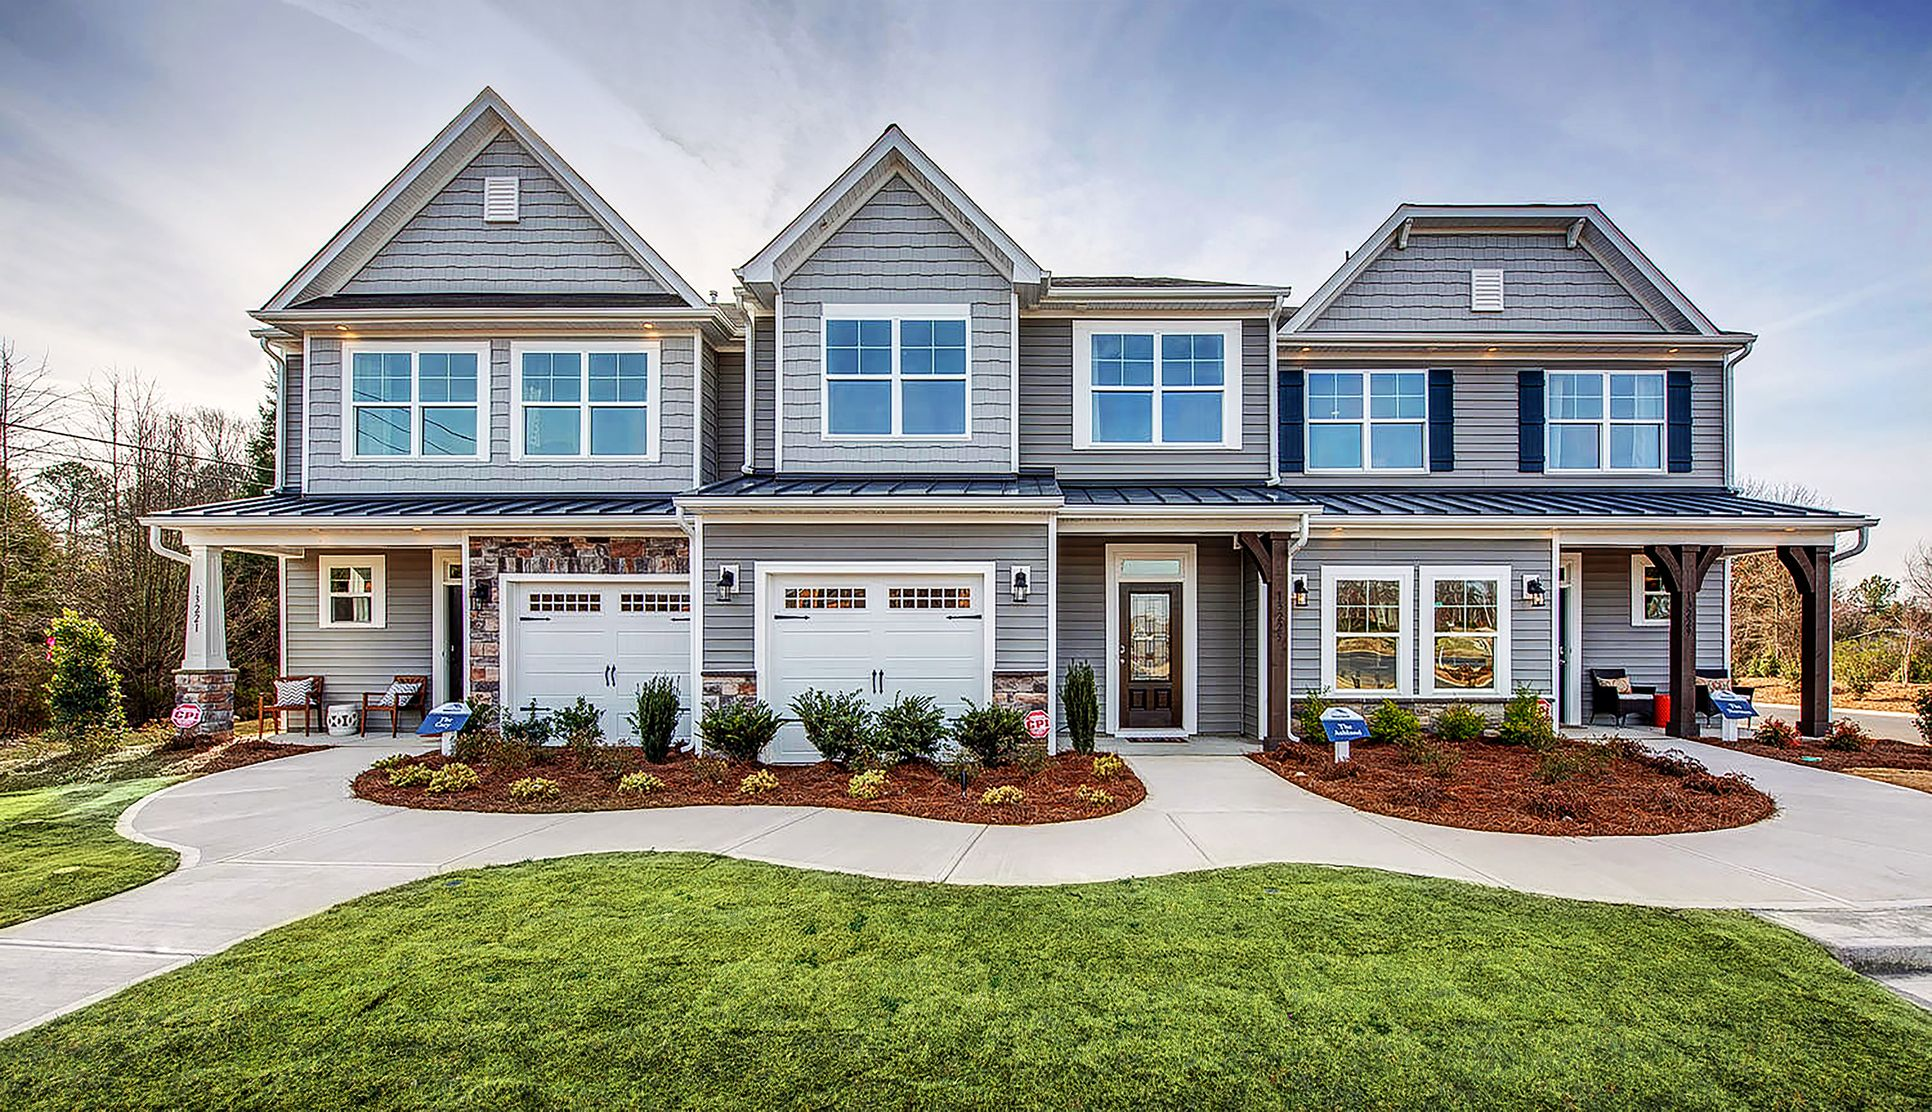 The Townhomes at McKee Glen